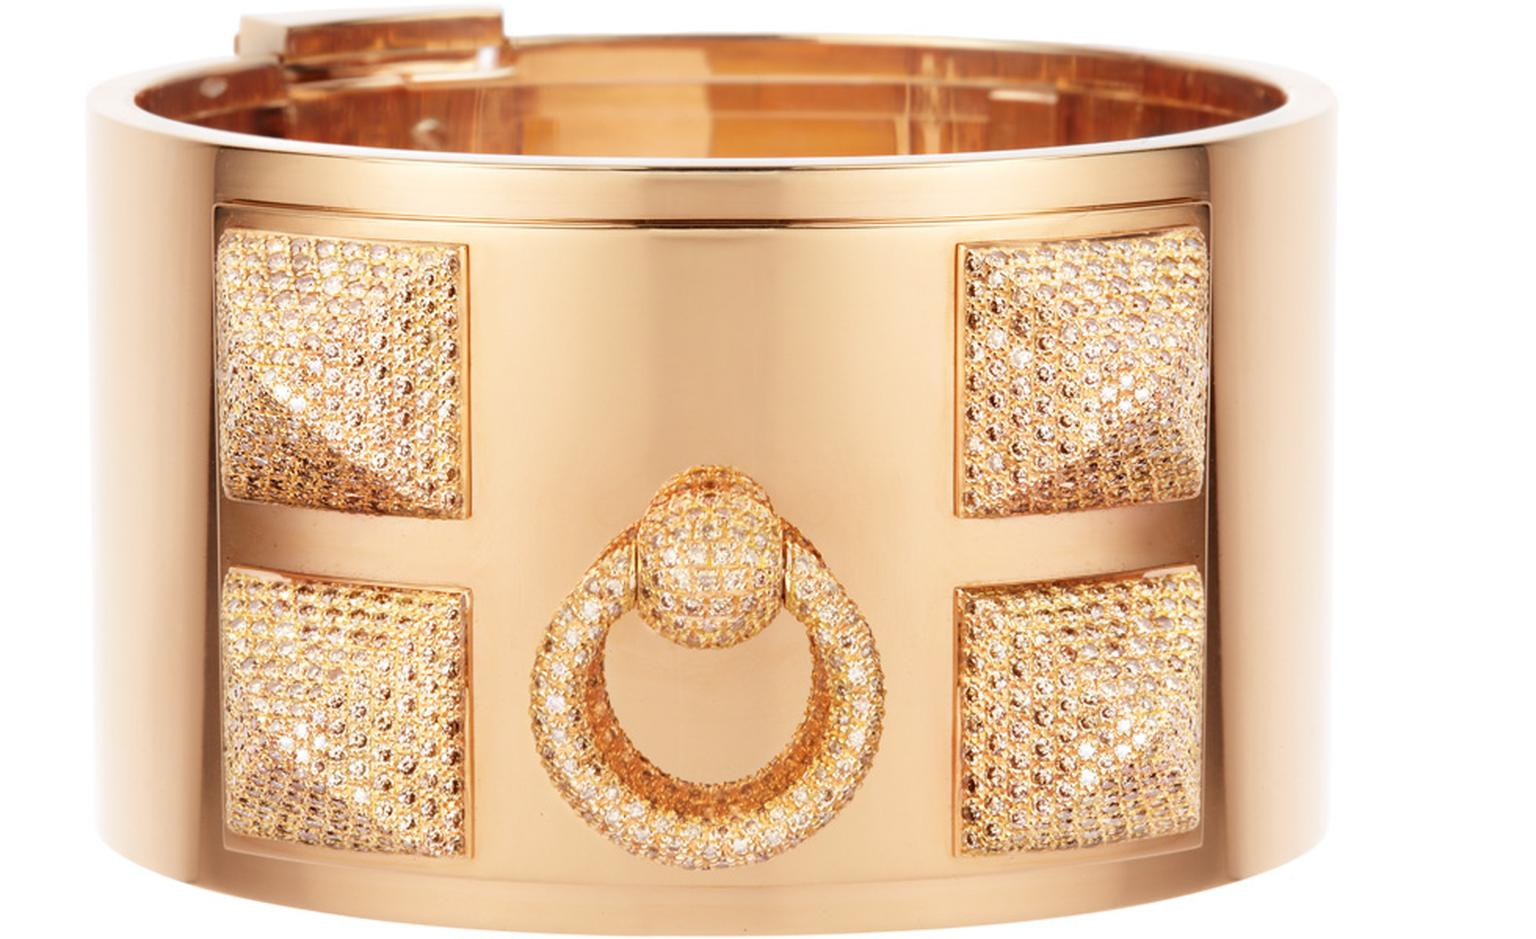 Hermes cuff in gold with diamonds